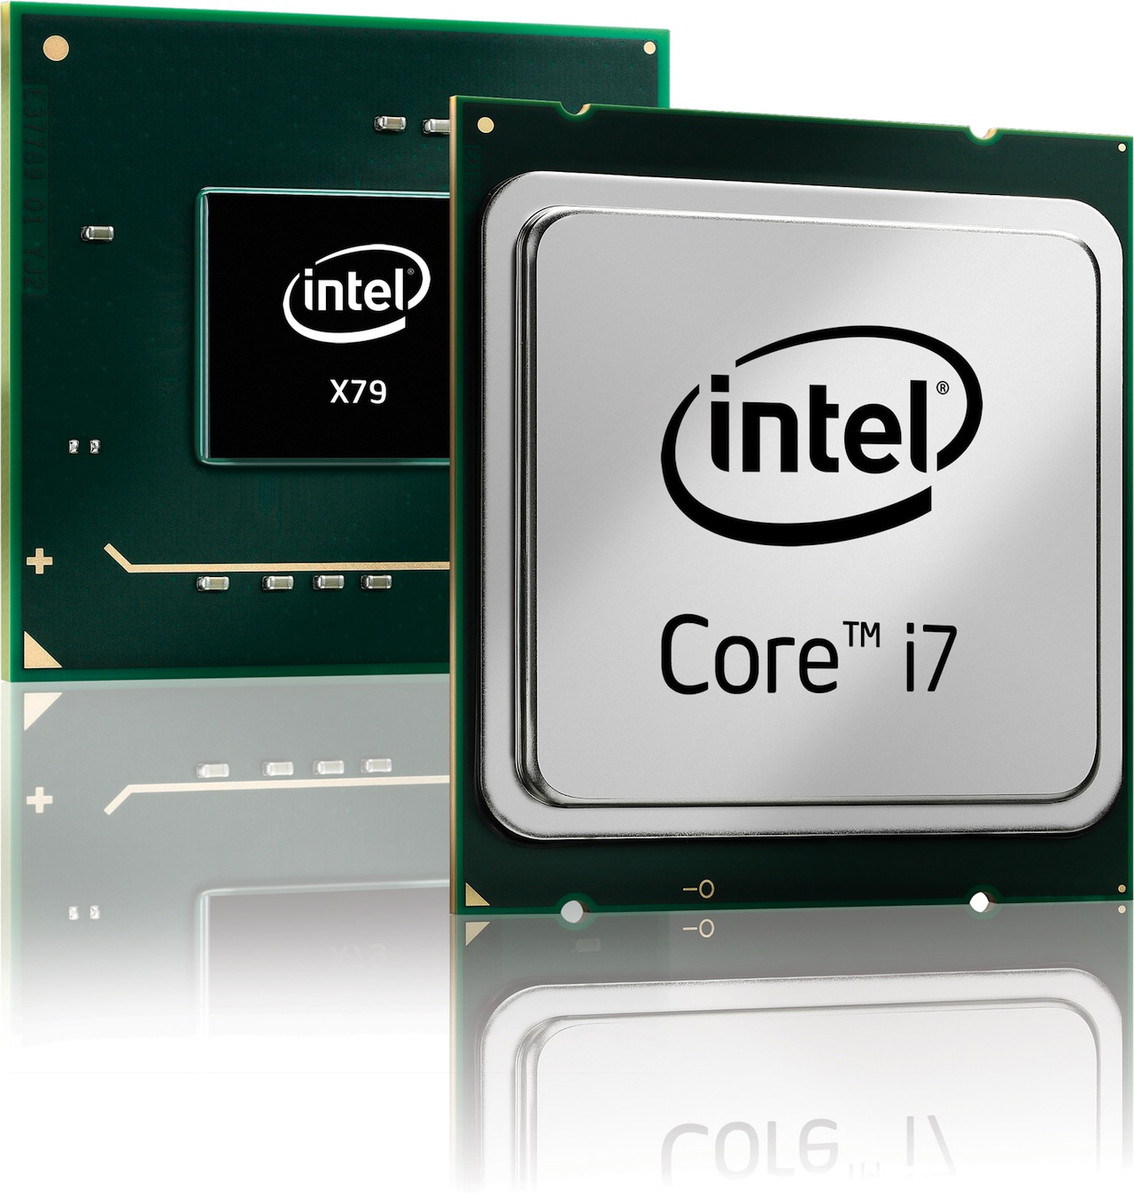 intel core i7 Tune your game for intel® graphics use gameplayintelcom to find the best in-game settings for your hardware.